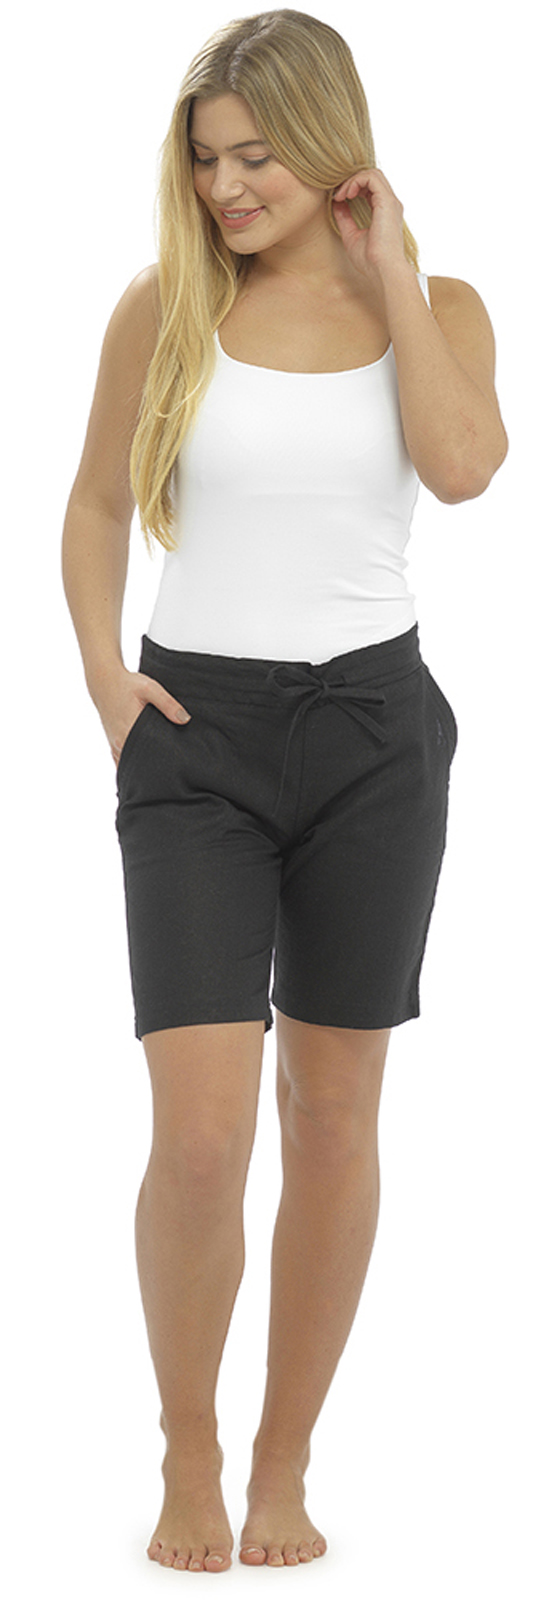 af53d41891 womens linen shorts with elasticated waist holiday beach hot pants girls  size ebay